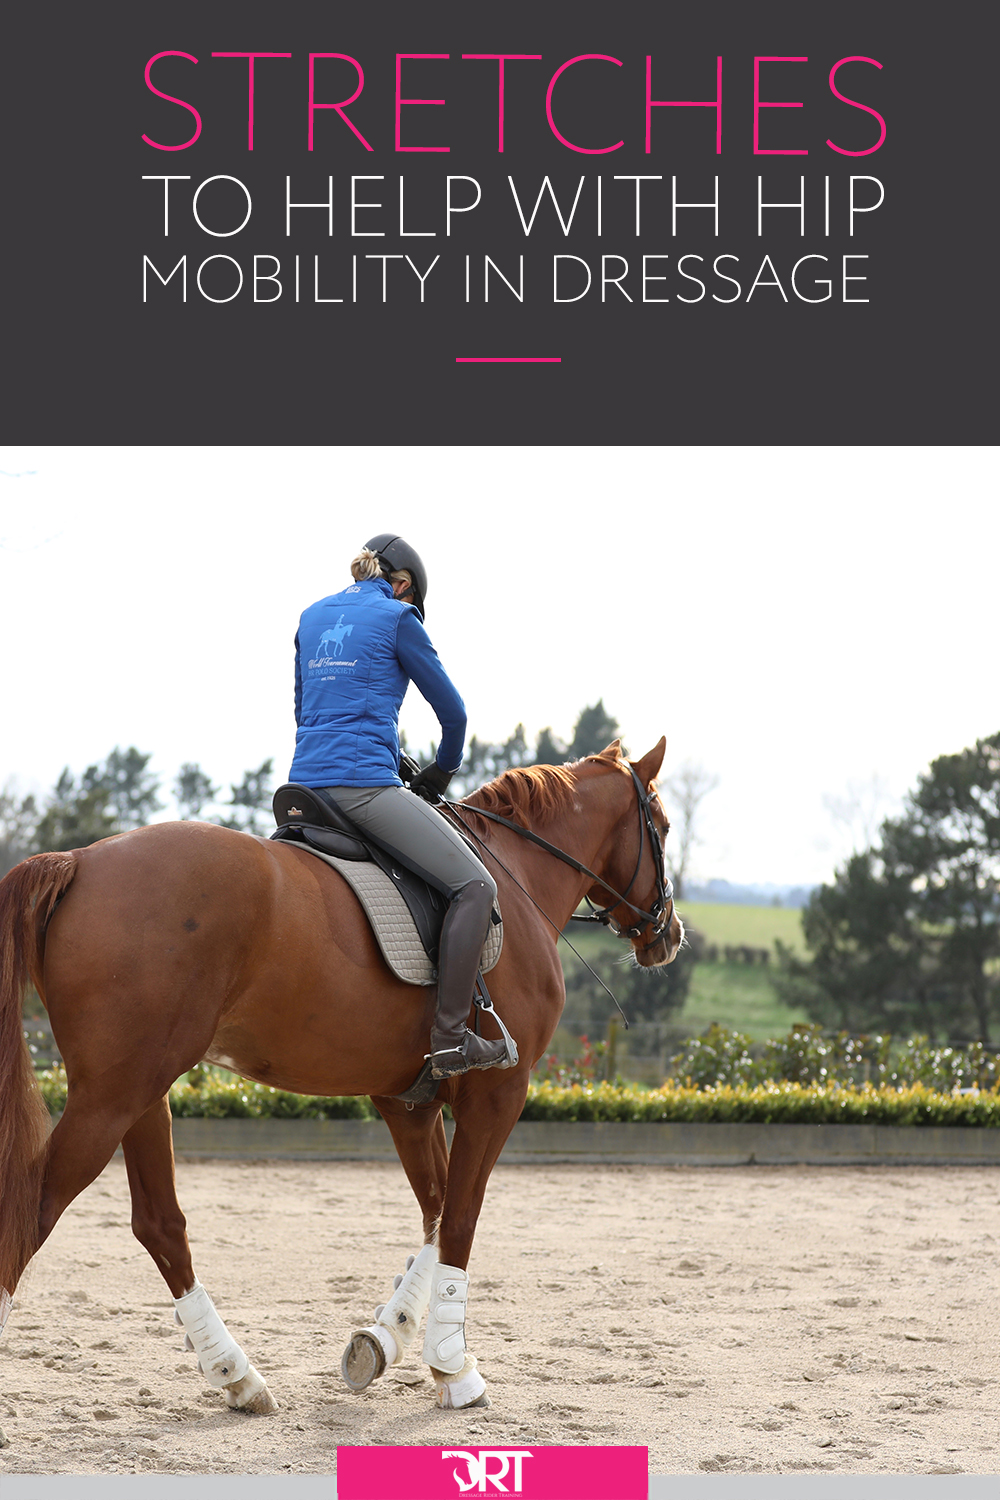 Here are some great ideas on how you can keep your hips healthy and mobile for dressage, including video demonstrating stretches you can do now. #dressagerider #dressagetraining #dressage